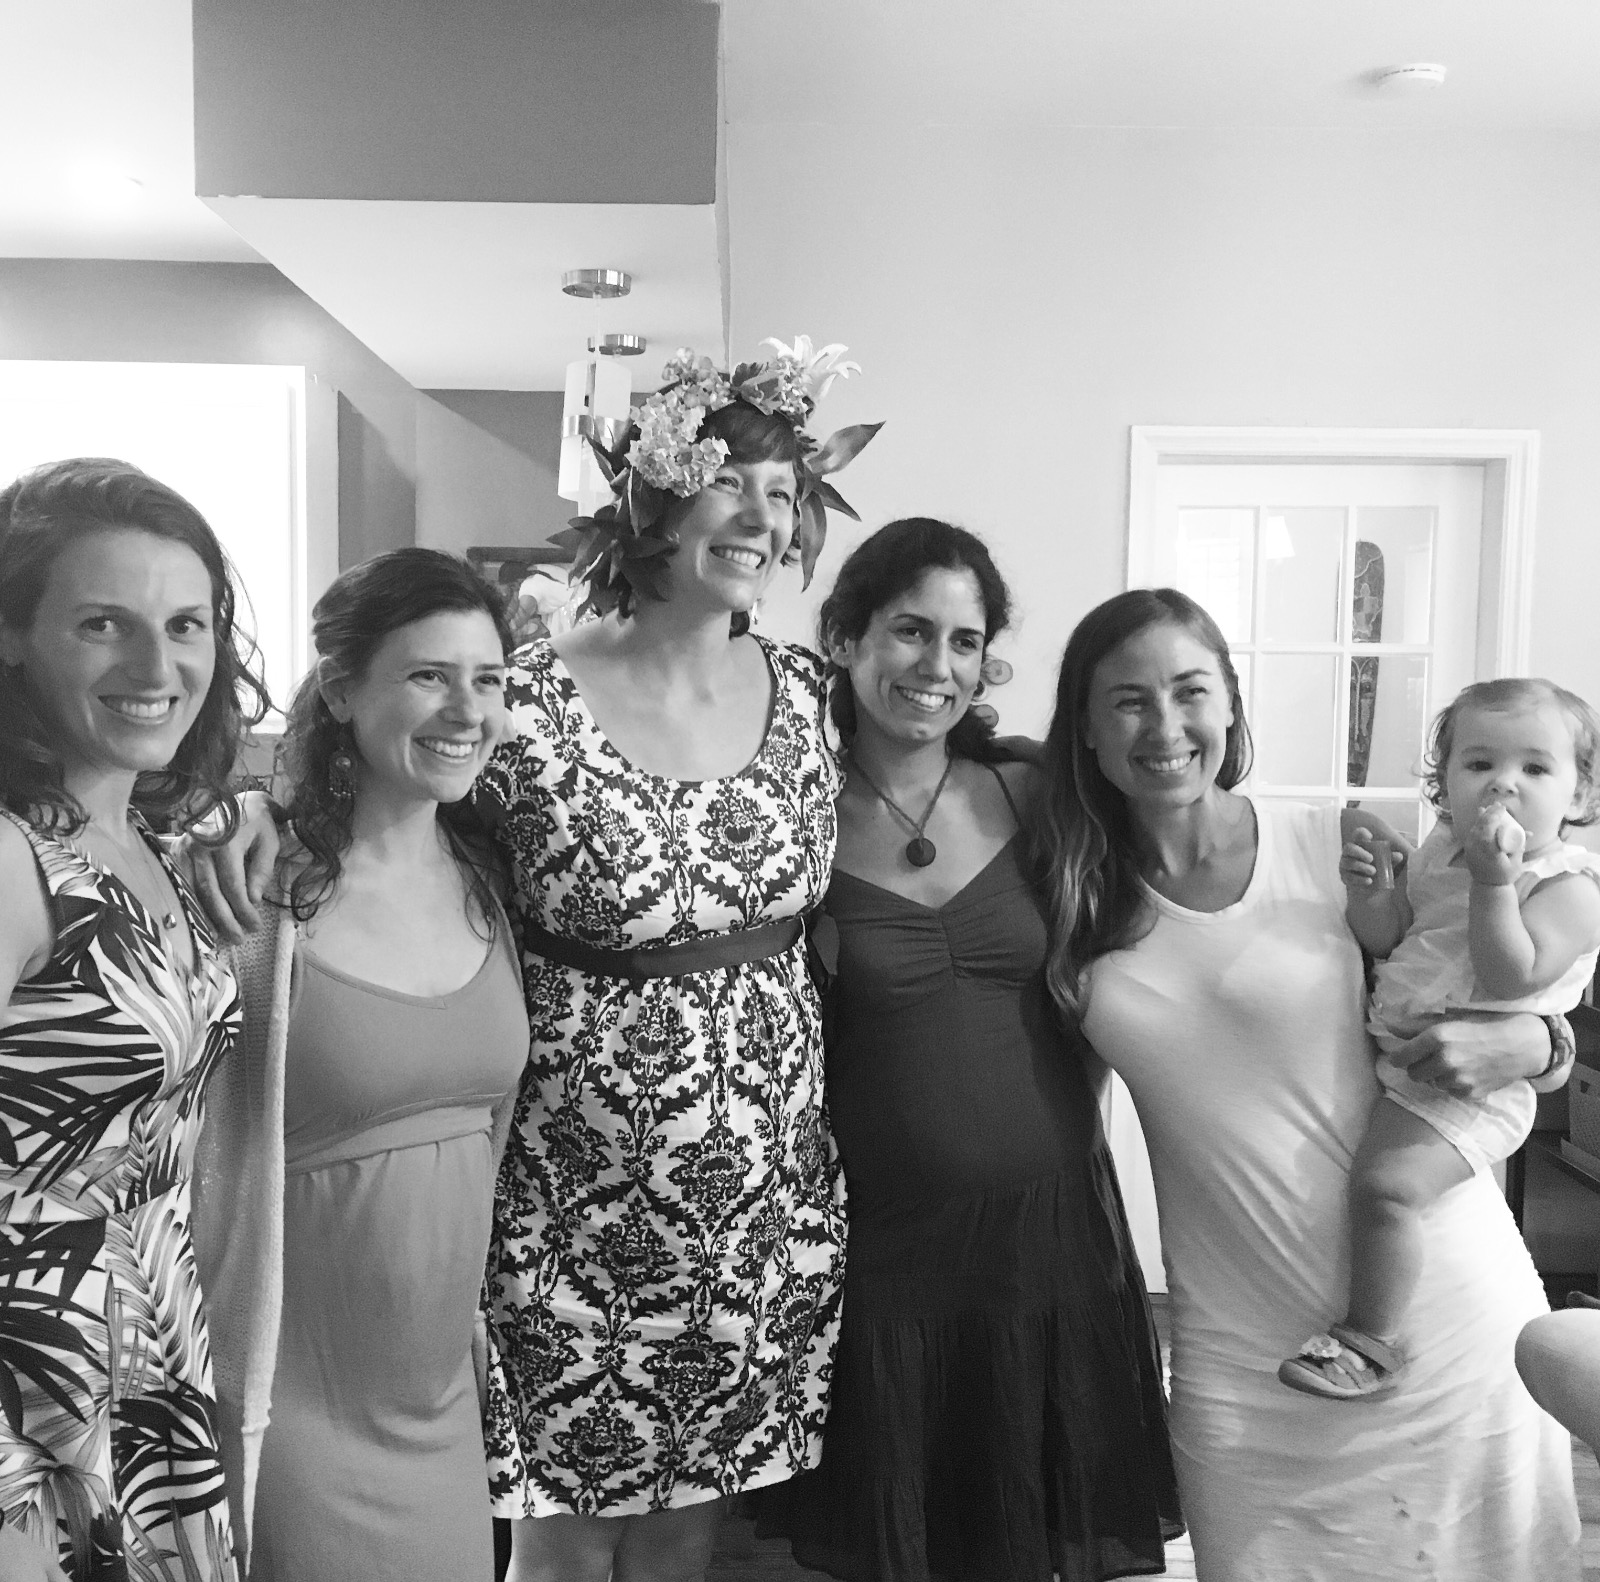 Here I am, enjoying a beautifully imperfect baby shower with some of my favorite ladies in the world.